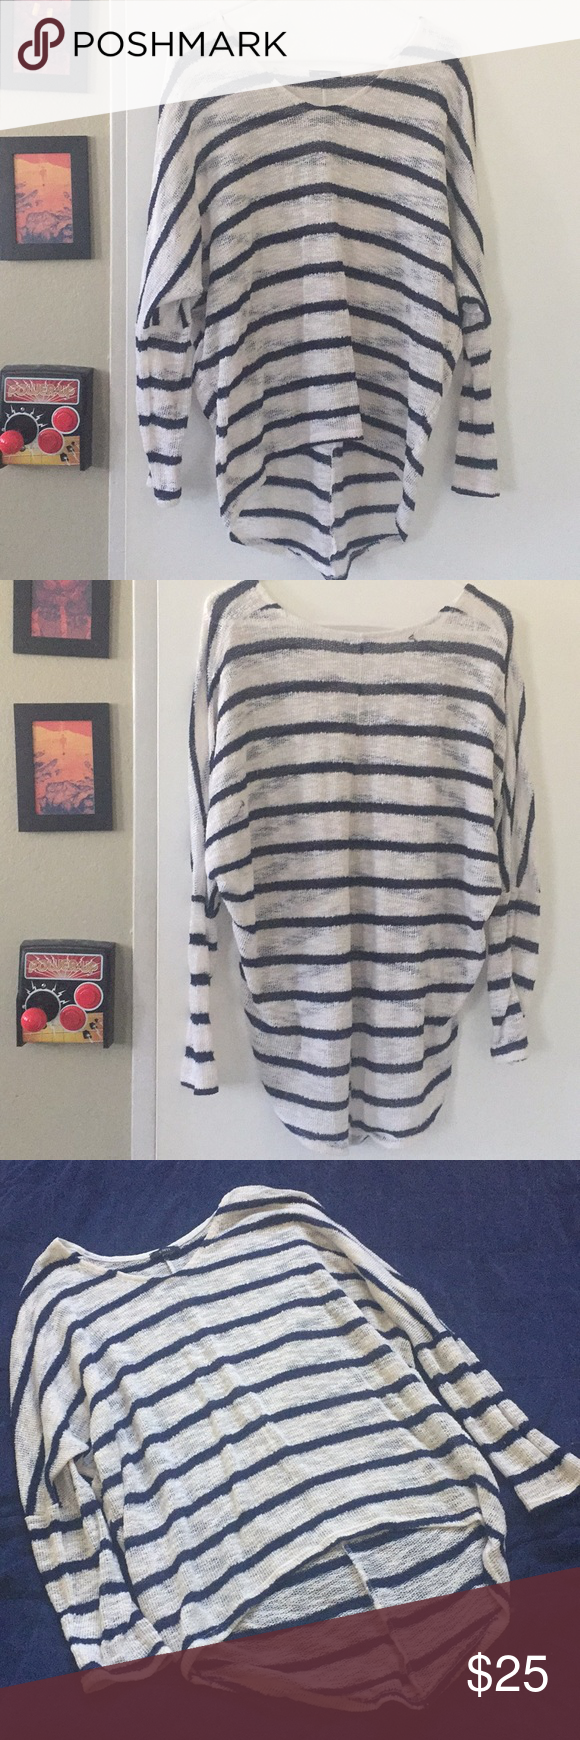 Navy and White ENTI Striped Sweater Comfy oversized ac25bcc3c